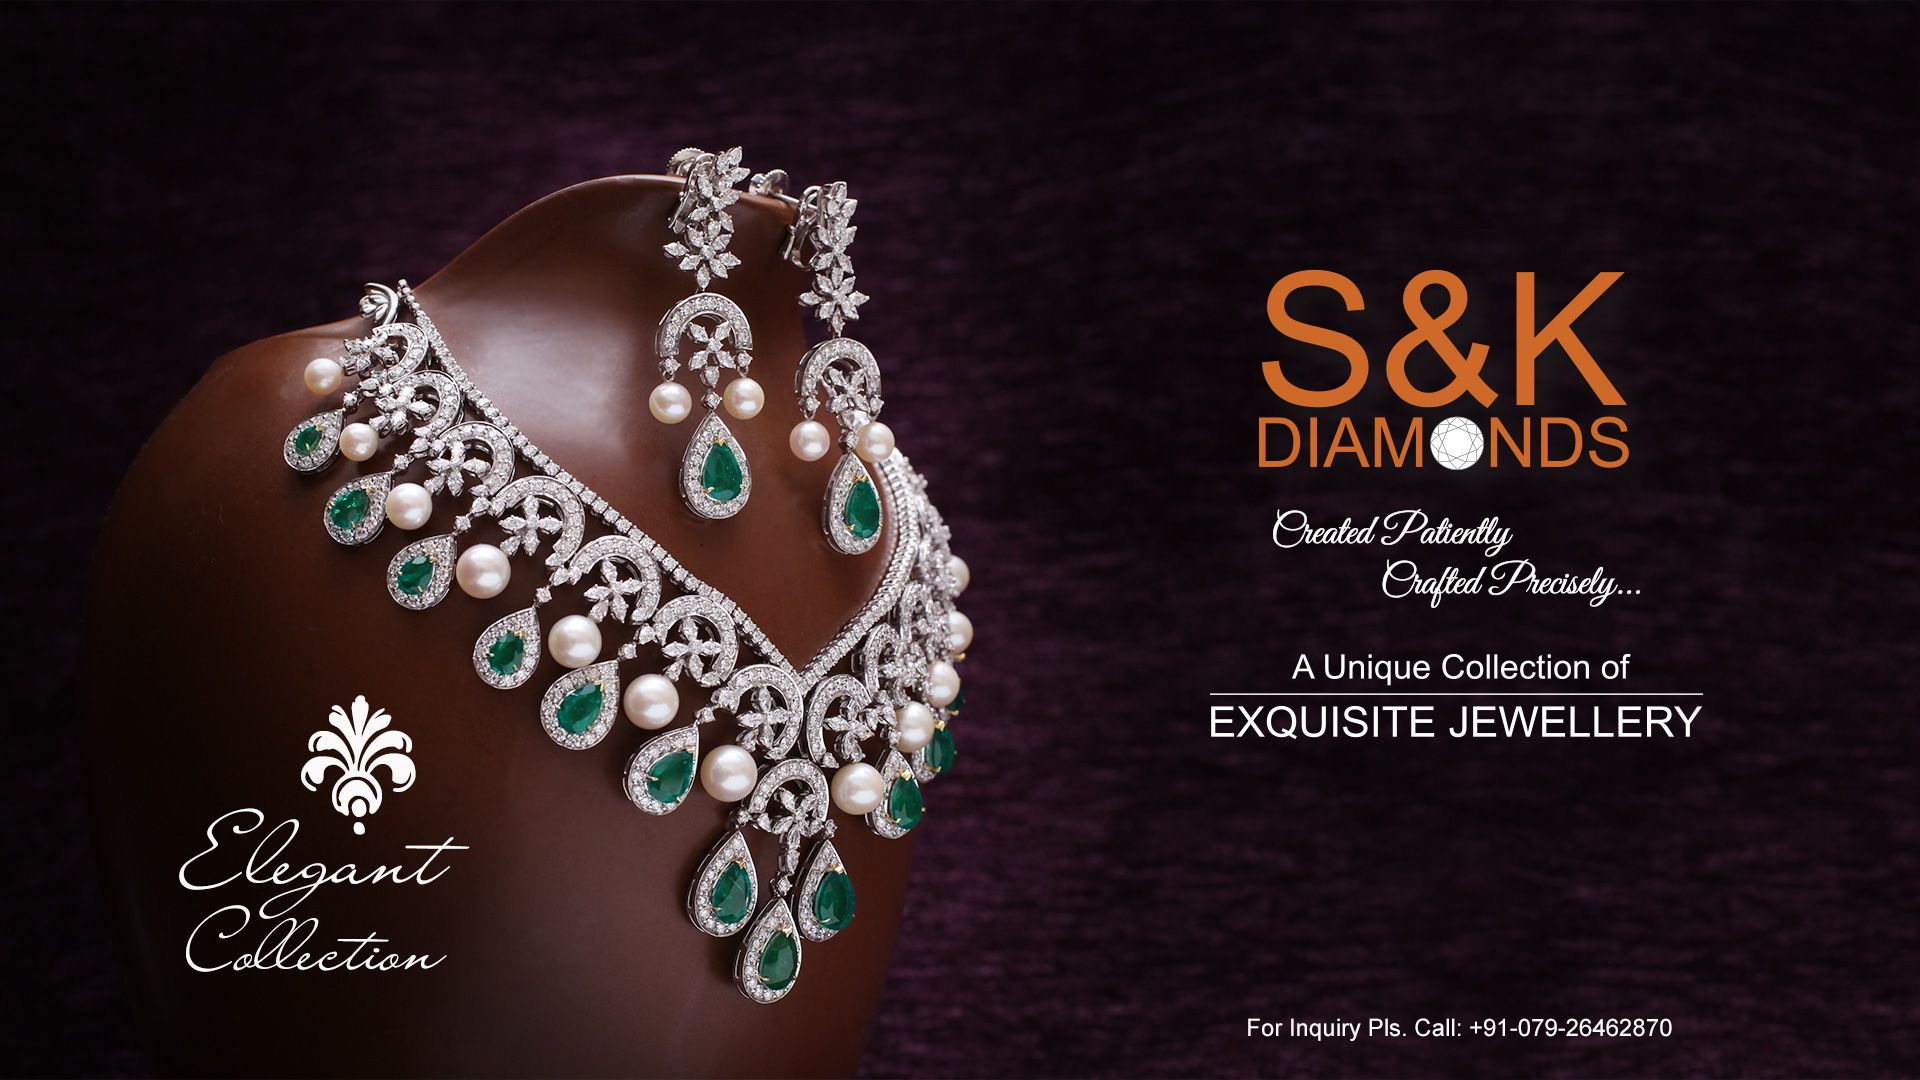 Introducing elegant collection this stunning